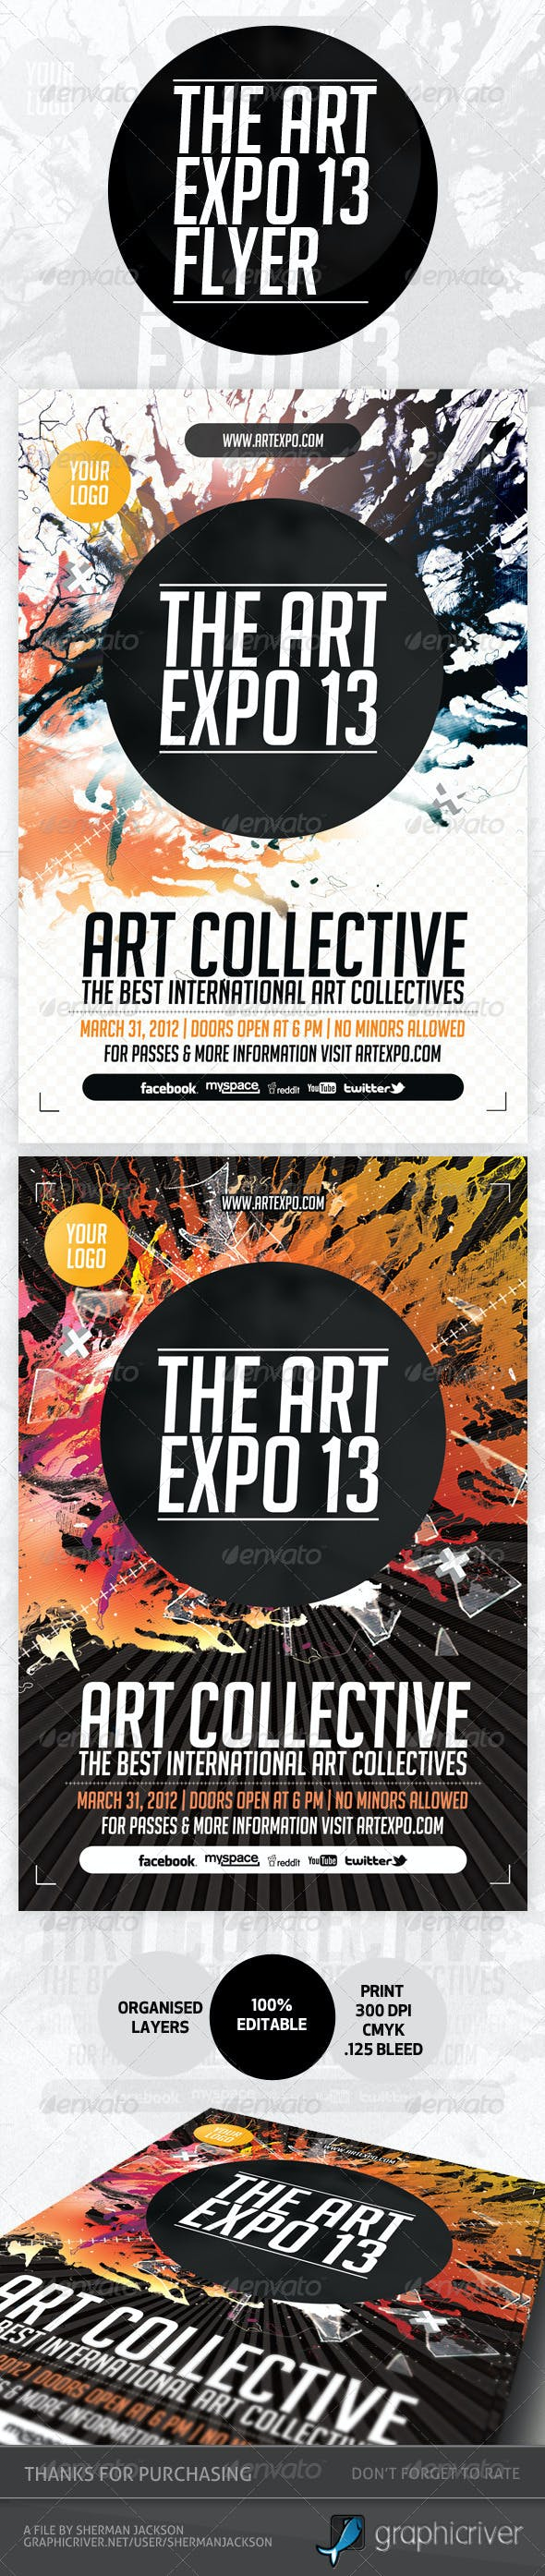 art expo art show event flyer template psd by shermanjackson